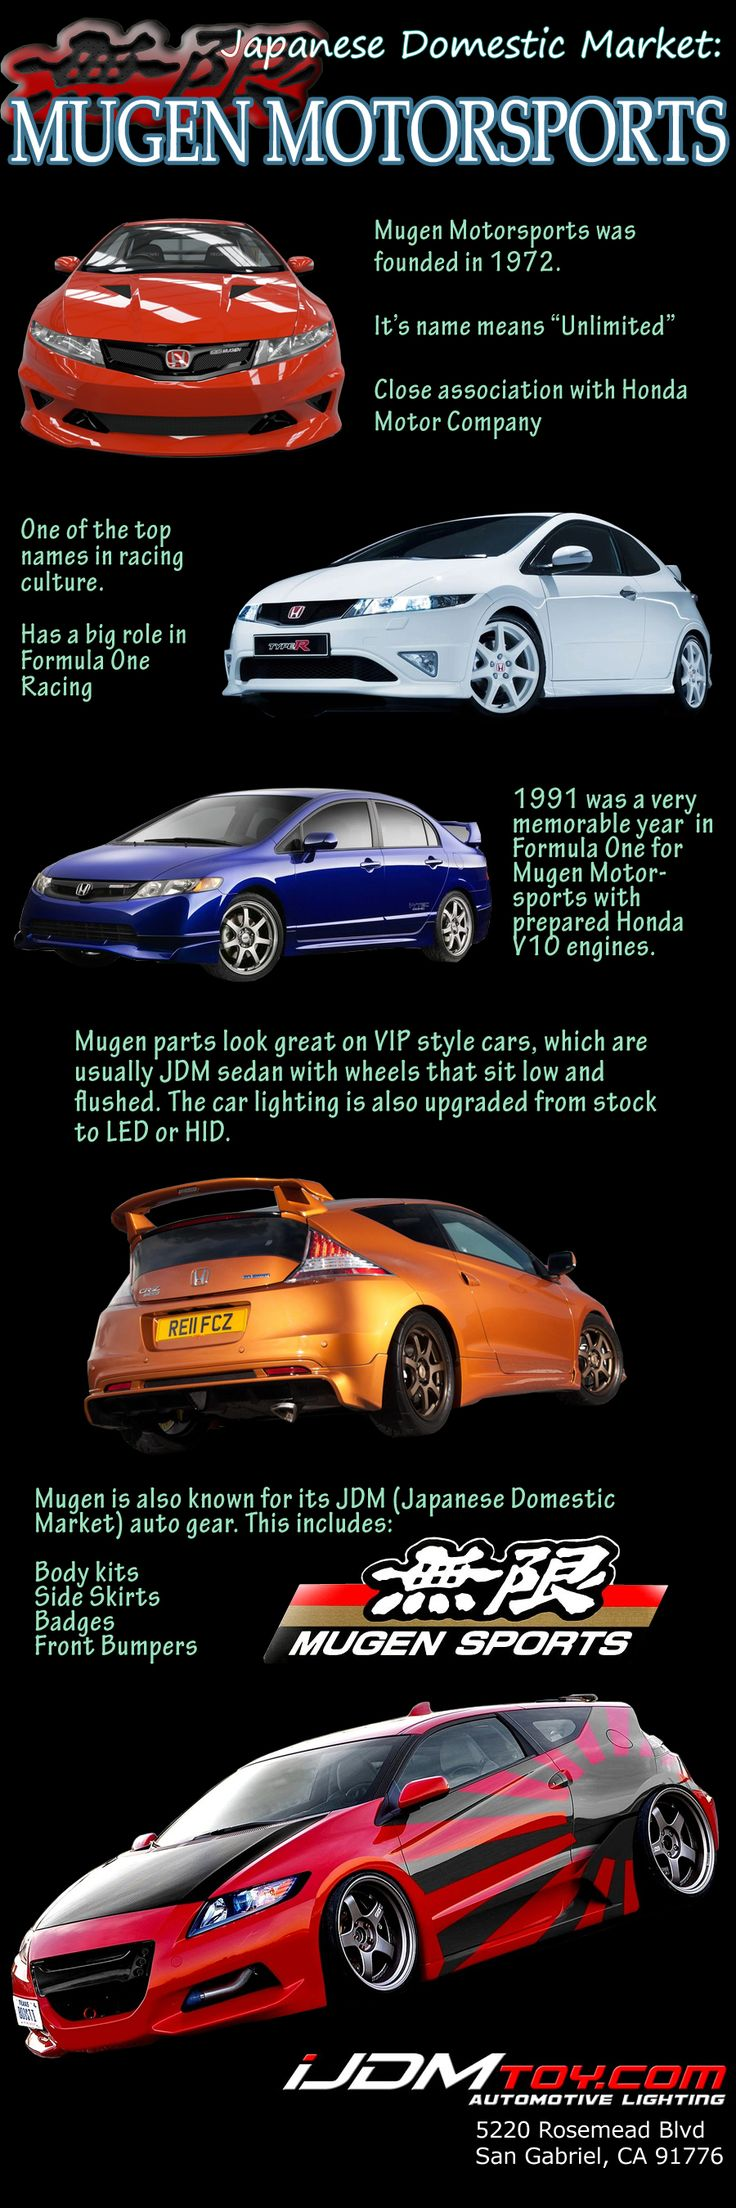 Mugen Motorsports is very well known in the JDM (Japanese Domestic Market) and is well associated with Honda.   #Mugen #Motorsports #MugenMotorsports #JDM #Japan #Japanese #Honda #HondaMotors #iJDMTOY #Info #Infographics #pictorial #LED